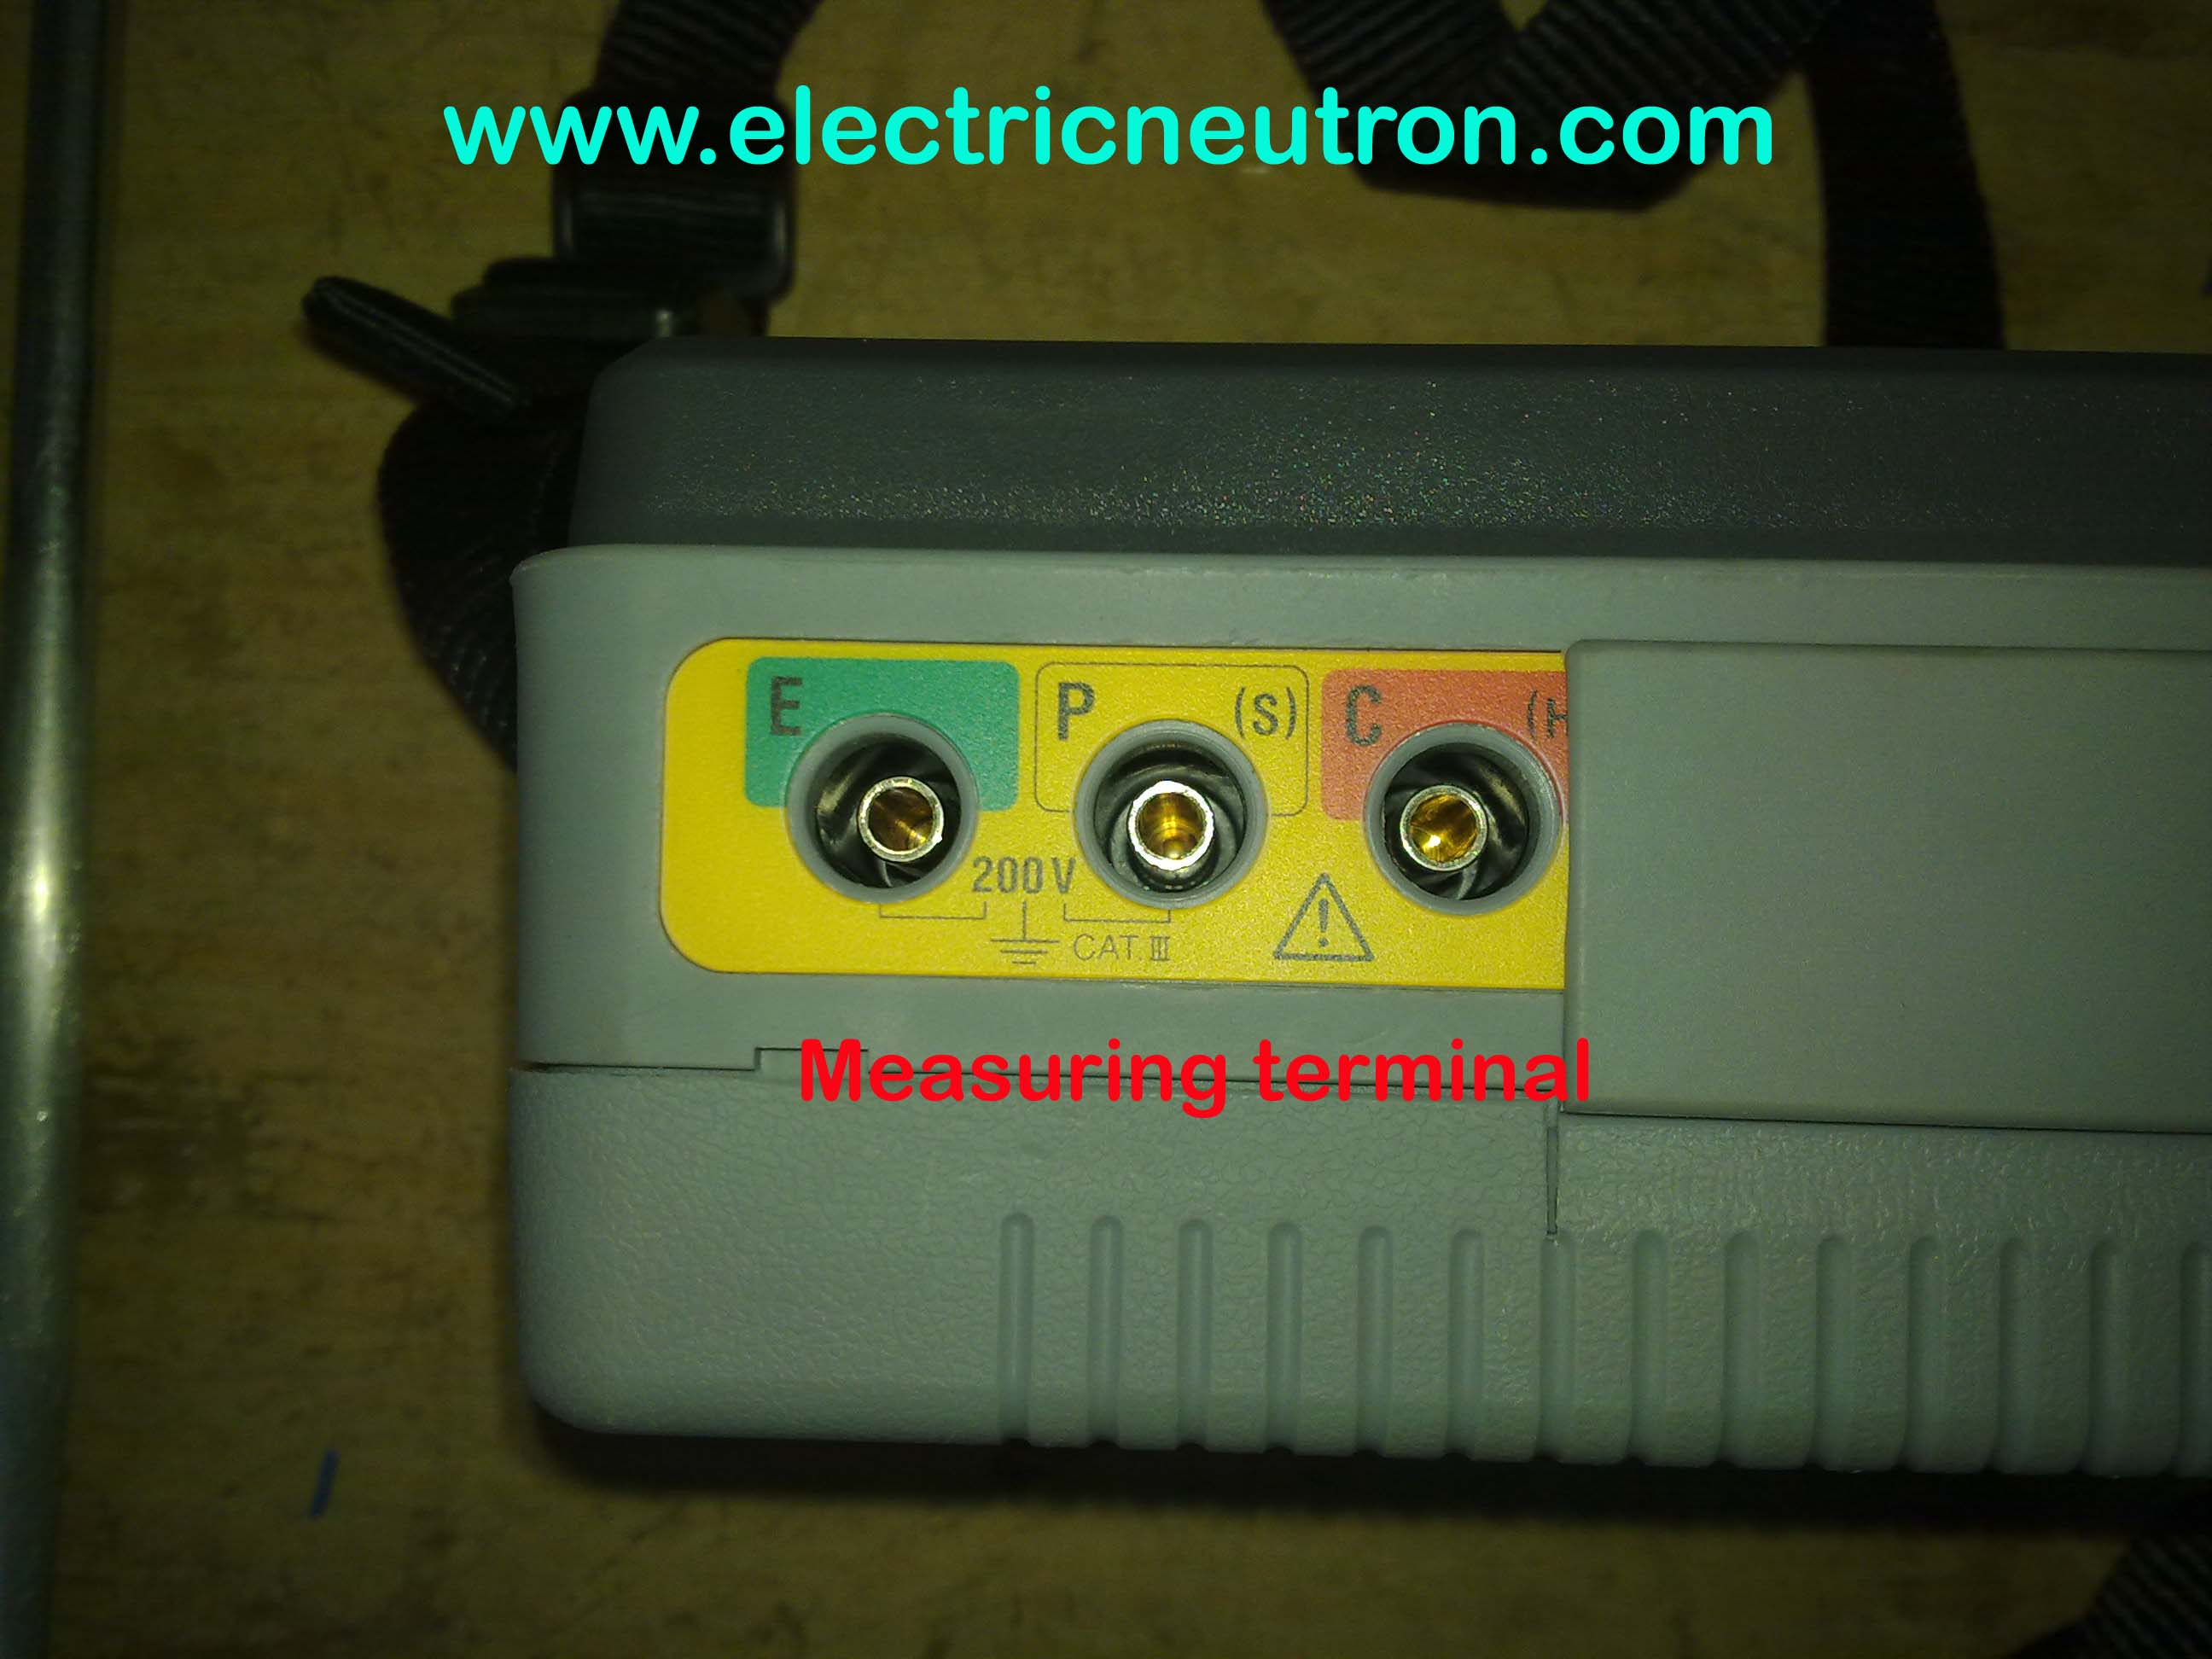 Earthing Resistance Tester - Working principle of overload relay